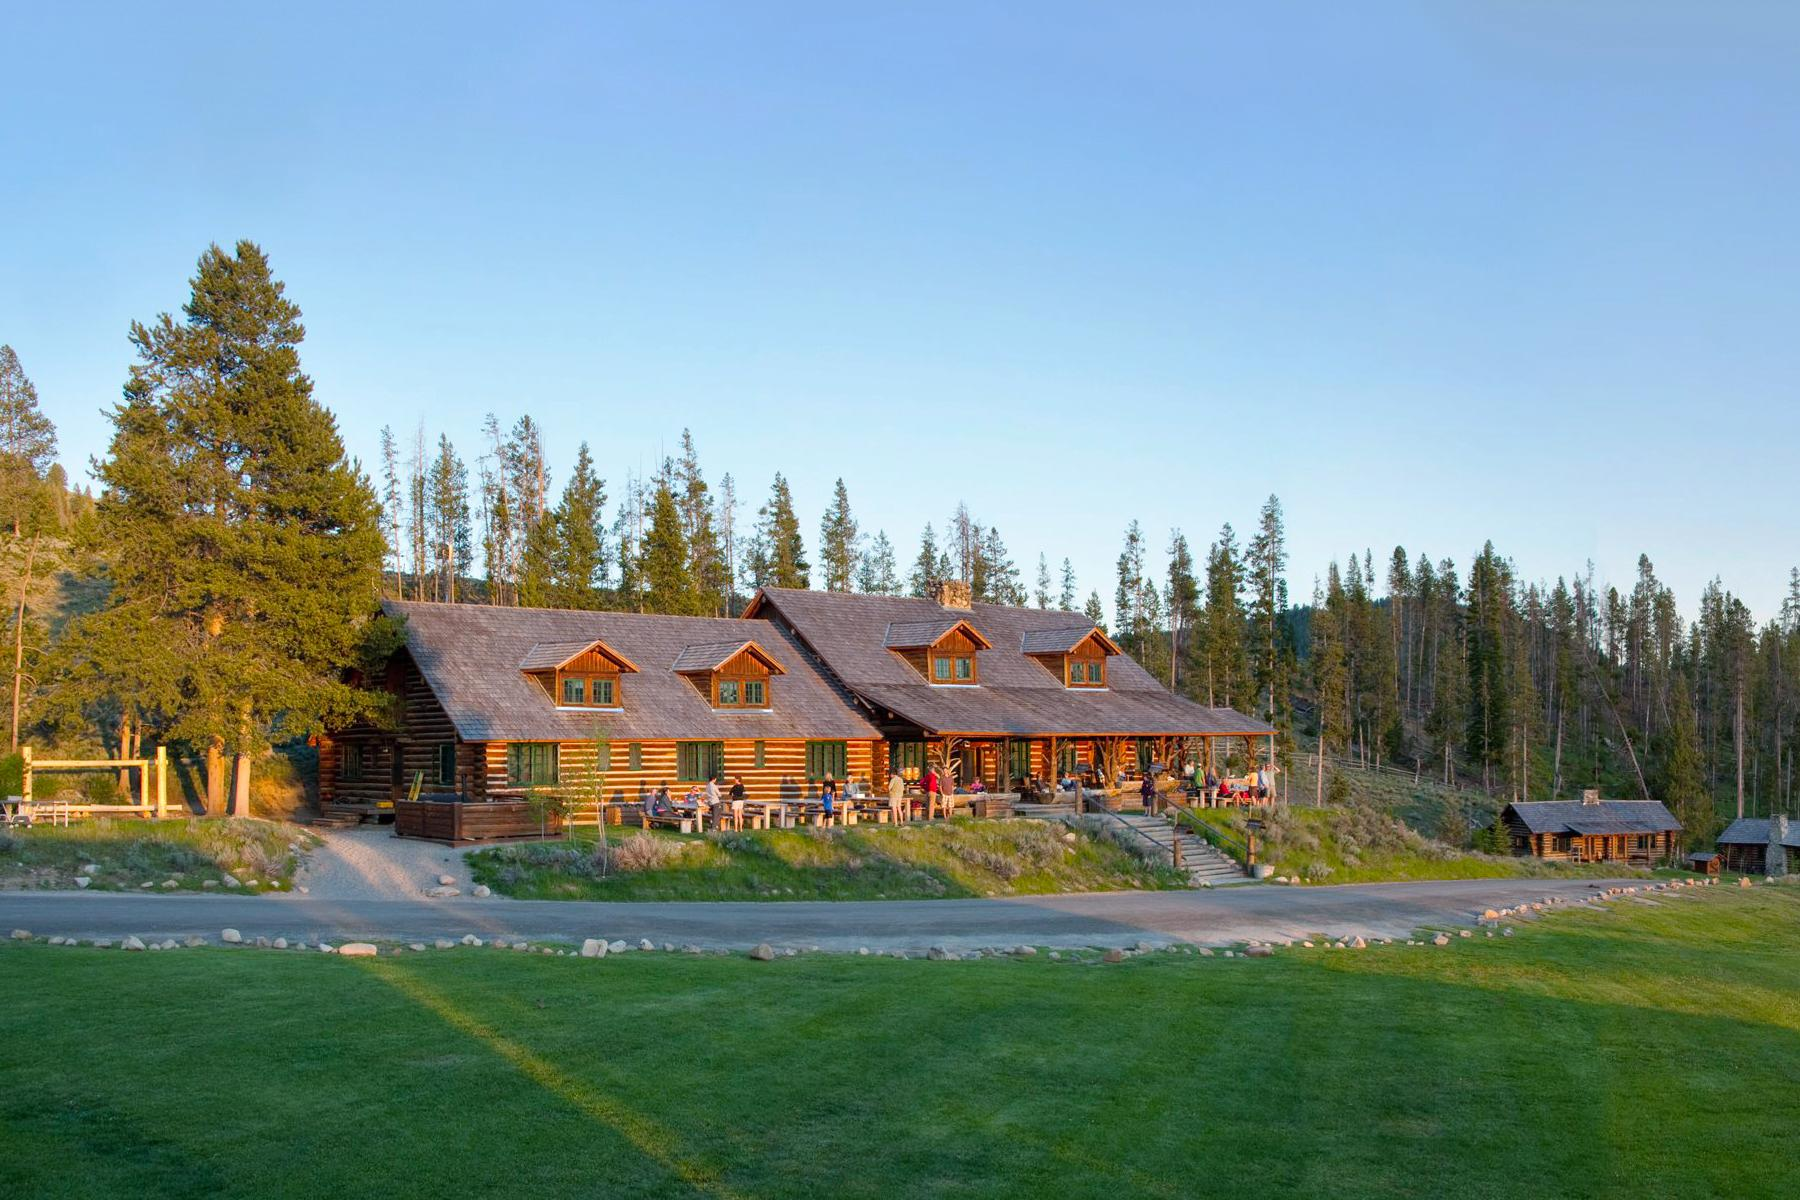 09_RusticWeddingVenues__IdahoRockyMountainRanch_Idaho